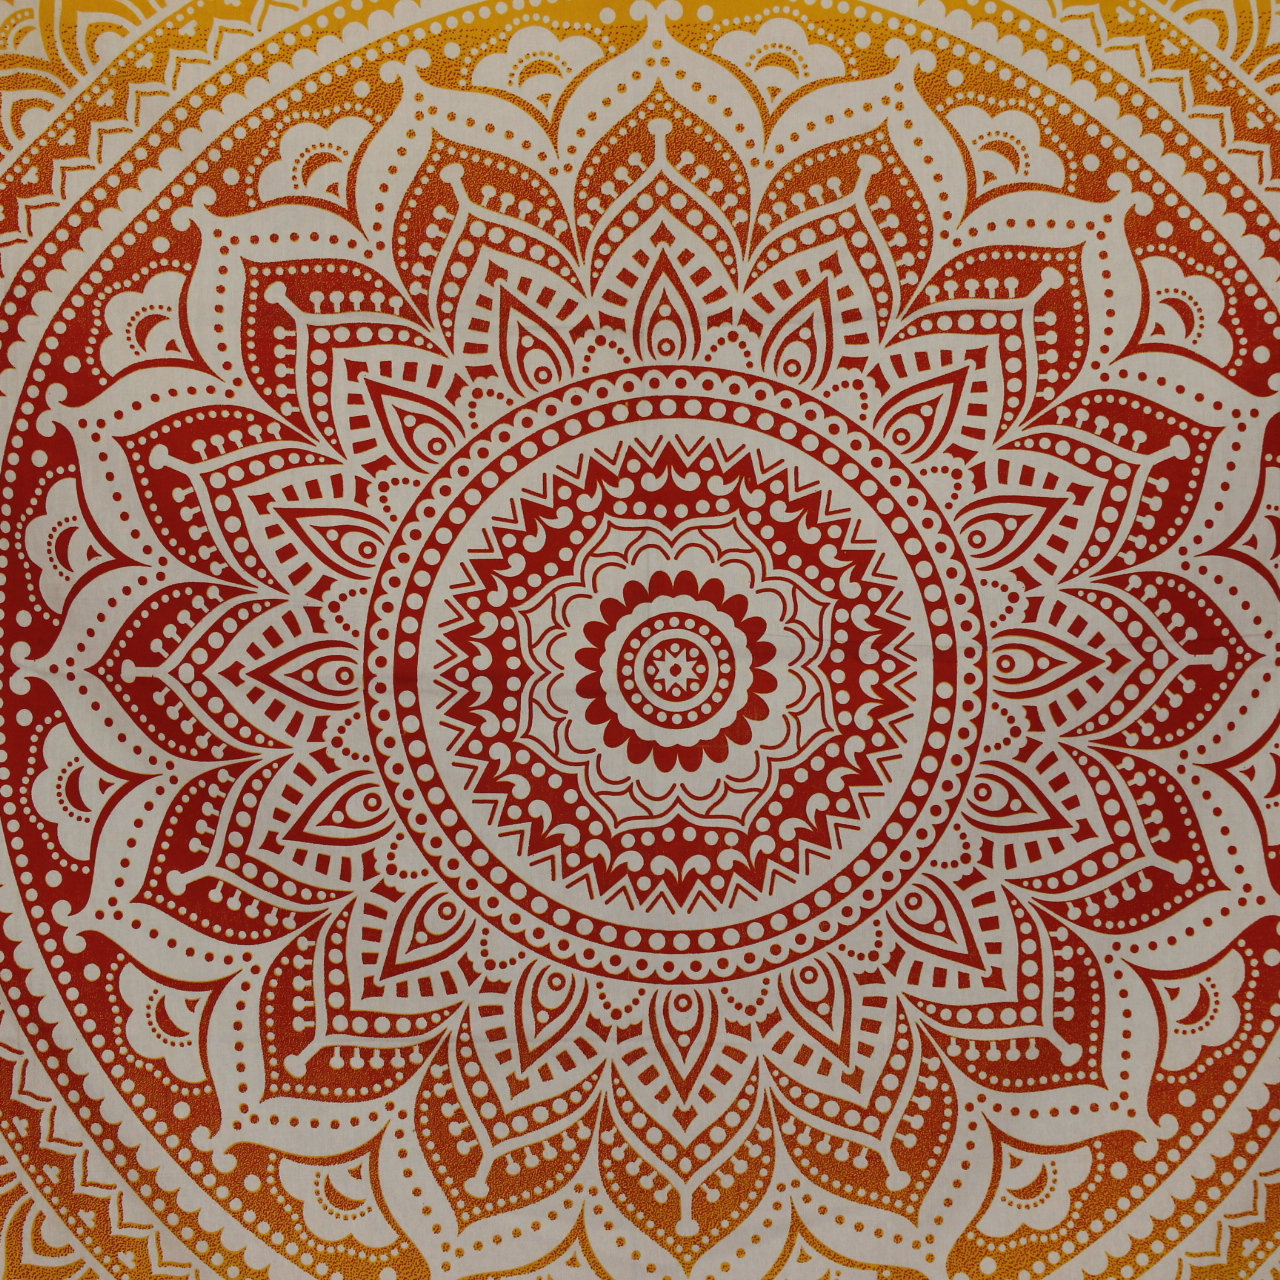 Red Ombre Wall Tapestry, Queen Size Mandala Wall Tapestry and Bedspread, Hippie Blamket, Beach throw, Picnic sheet, cotton fabric wall art